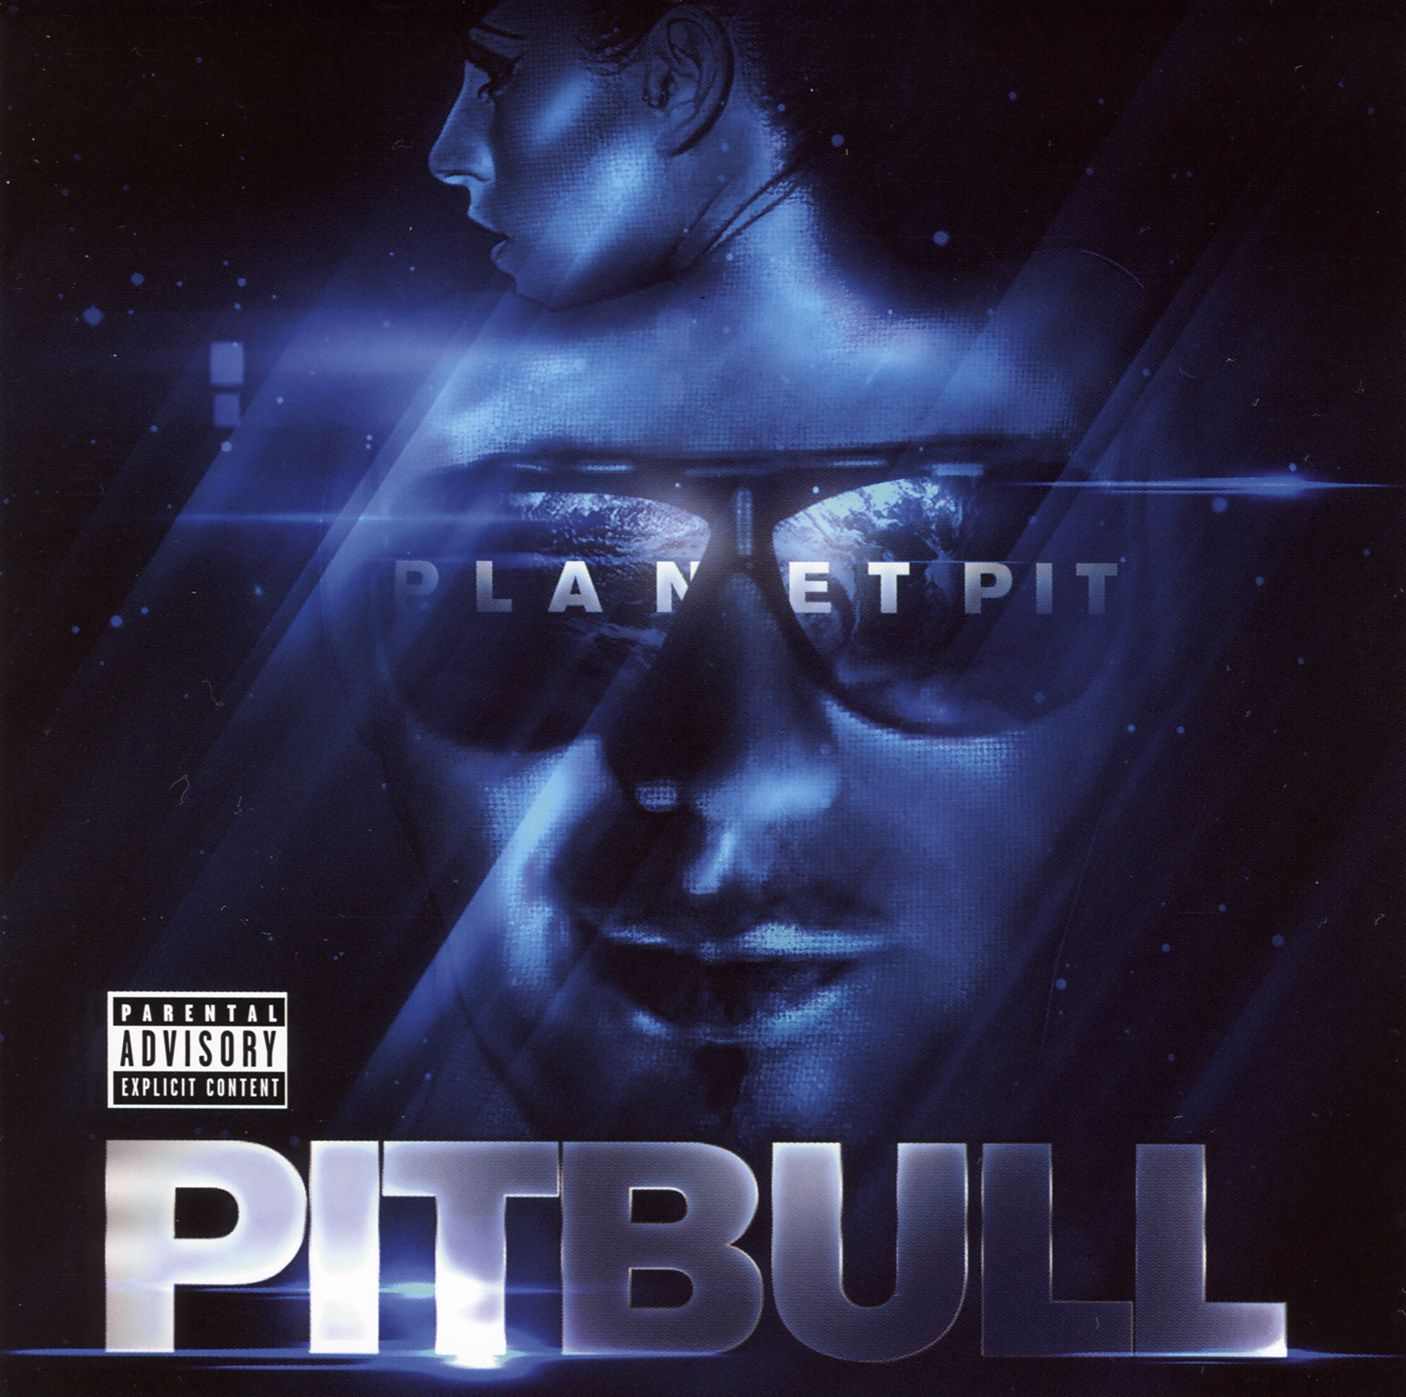 Pitbull - Planet Pit album cover